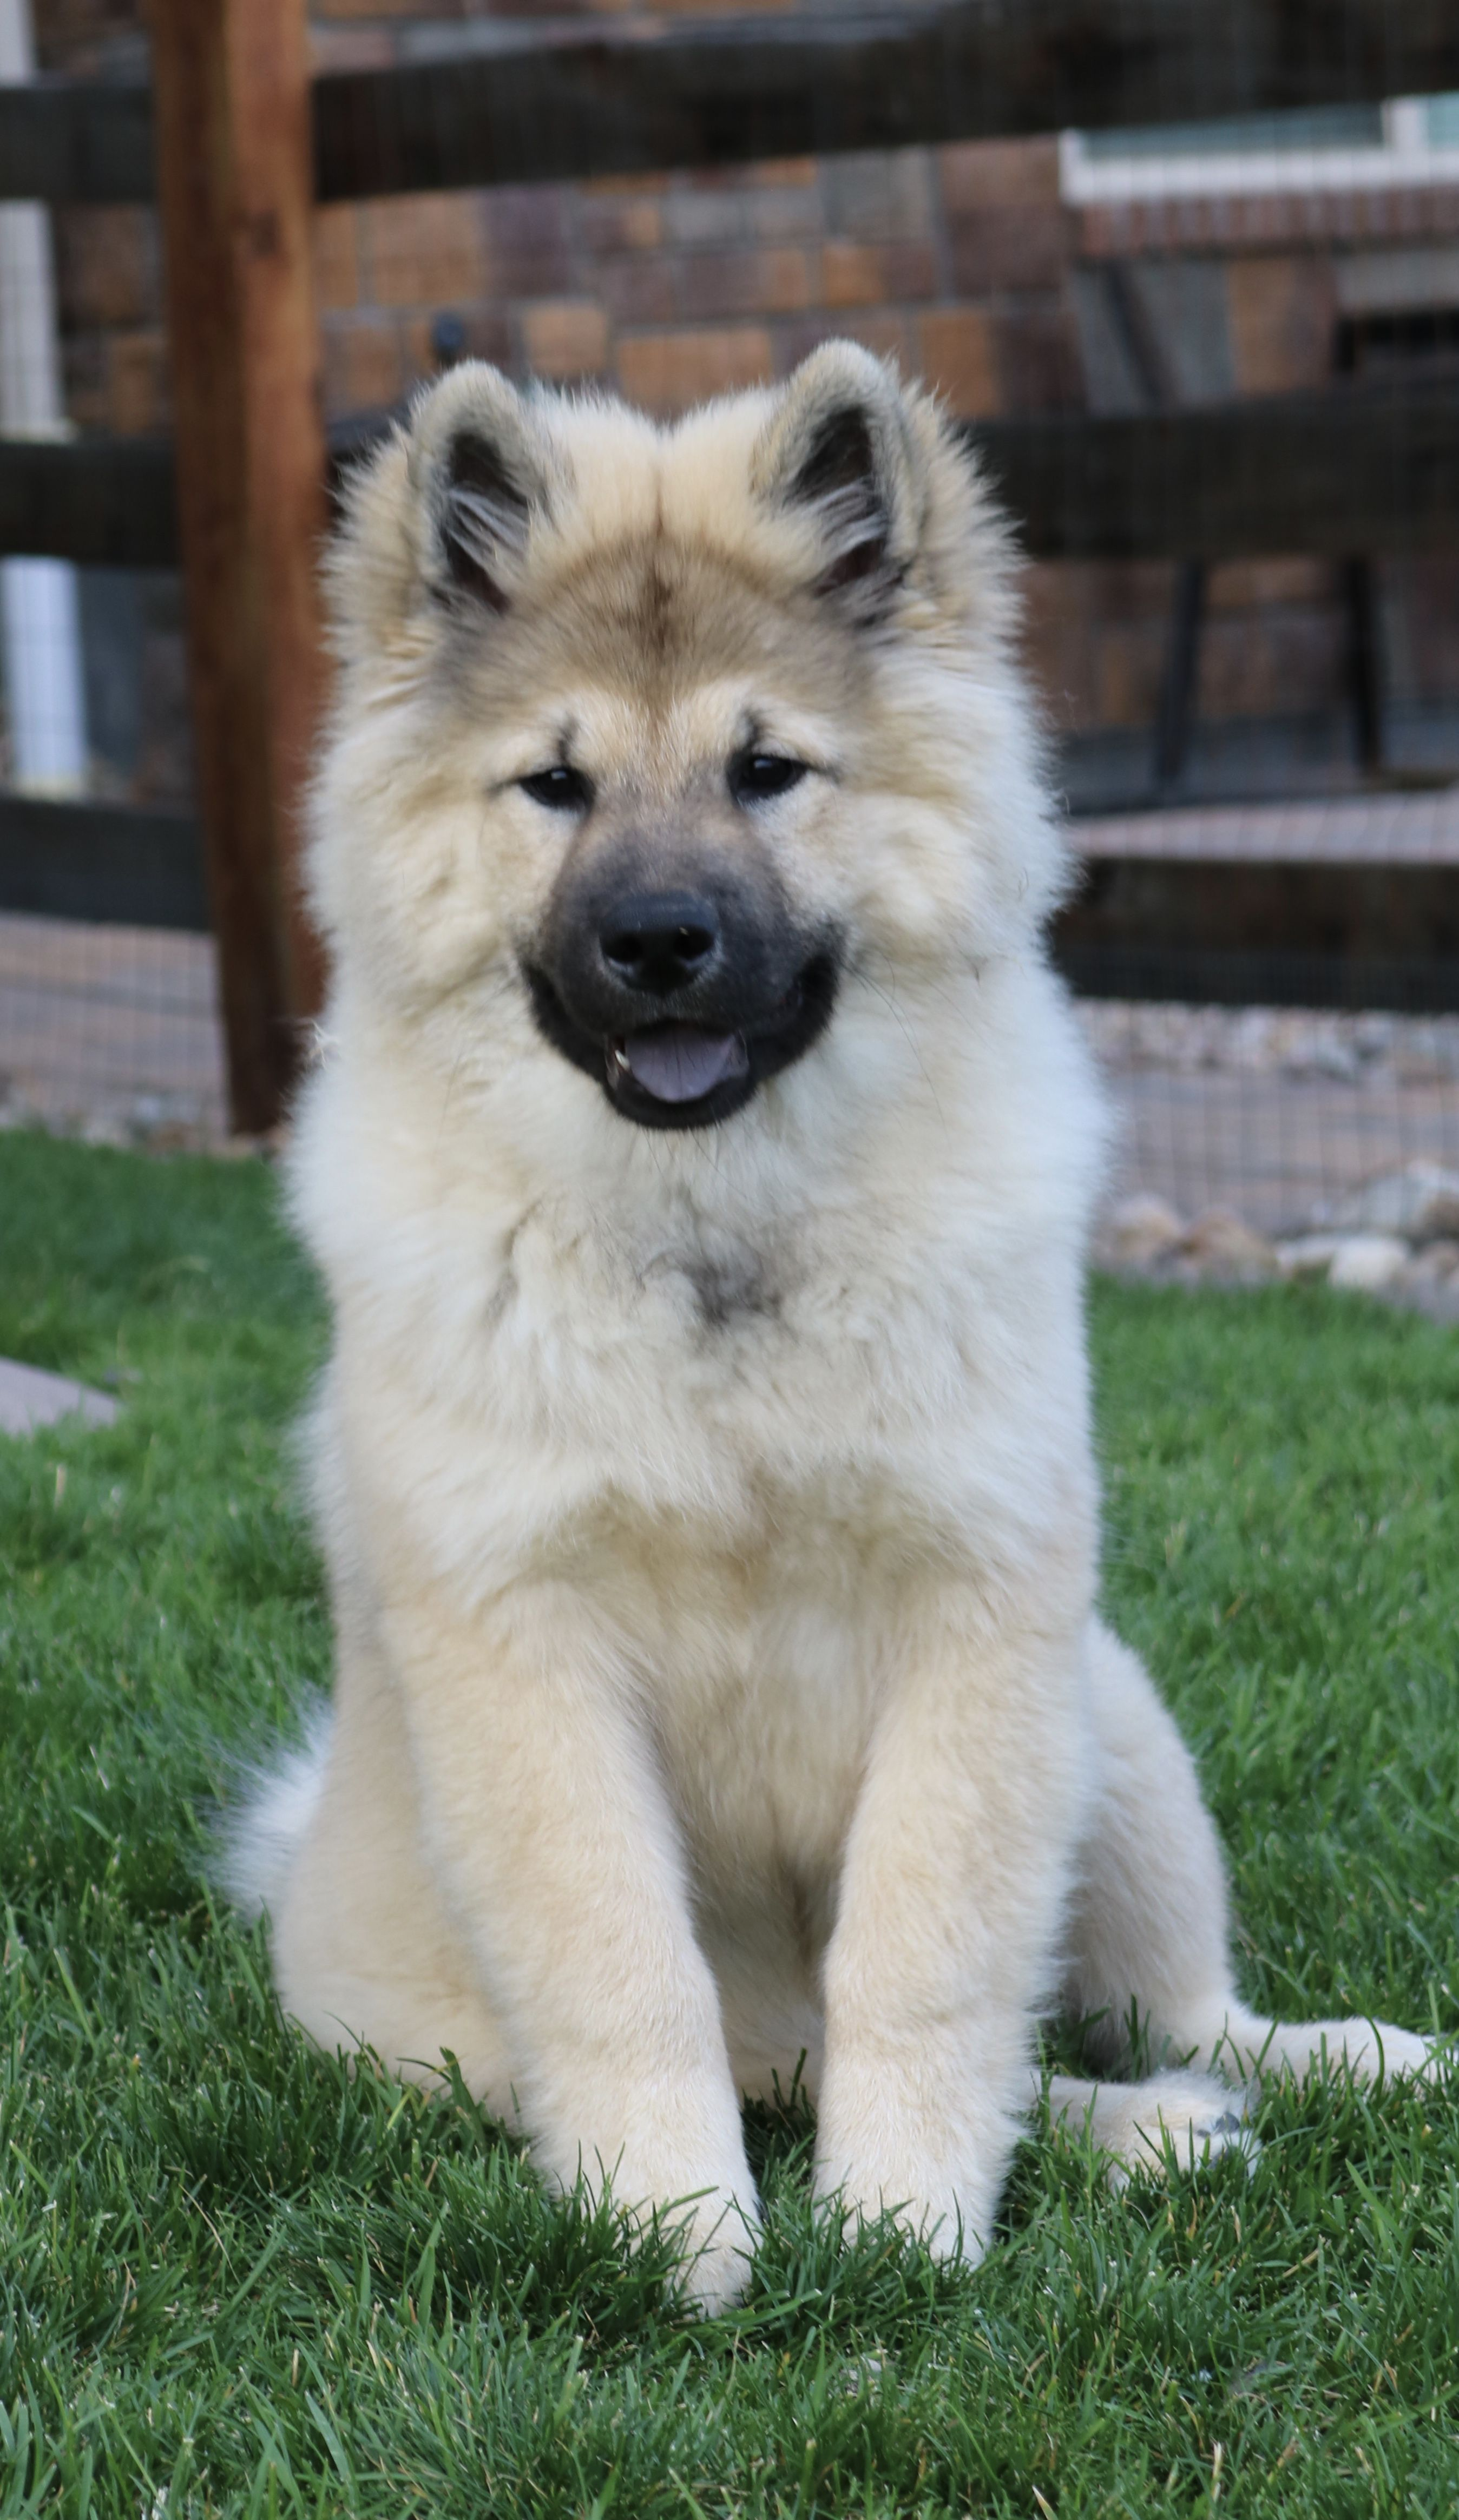 Pin By Heather Carmosino On Eurasier Dogs Dogs Animals And Pets Cute Animals